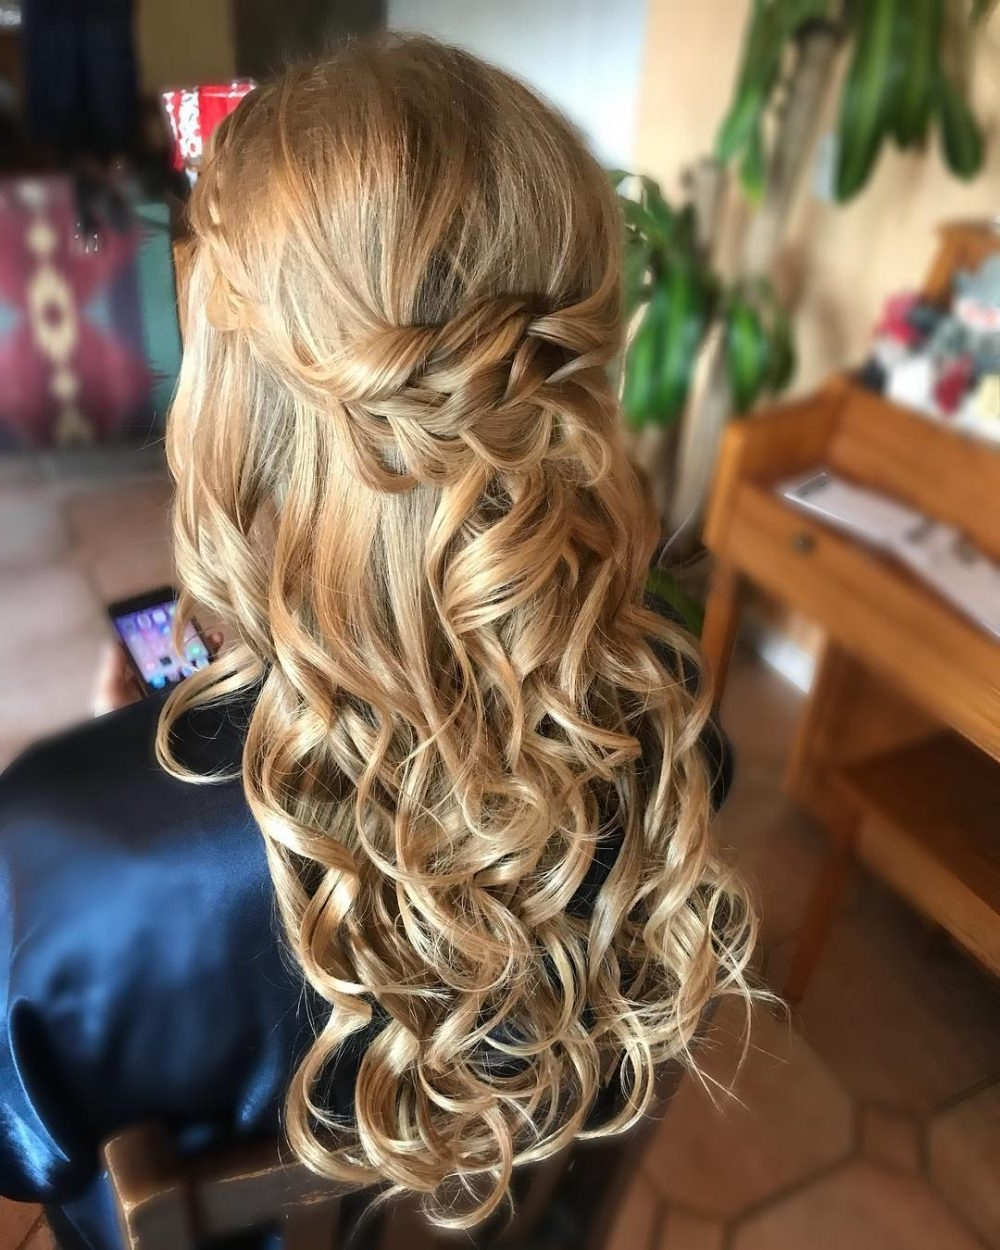 Best And Newest Wedding Hairstyles With Long Hair Within Wedding Hairstyles For Long Hair: 24 Creative & Unique Wedding Styles (View 2 of 15)